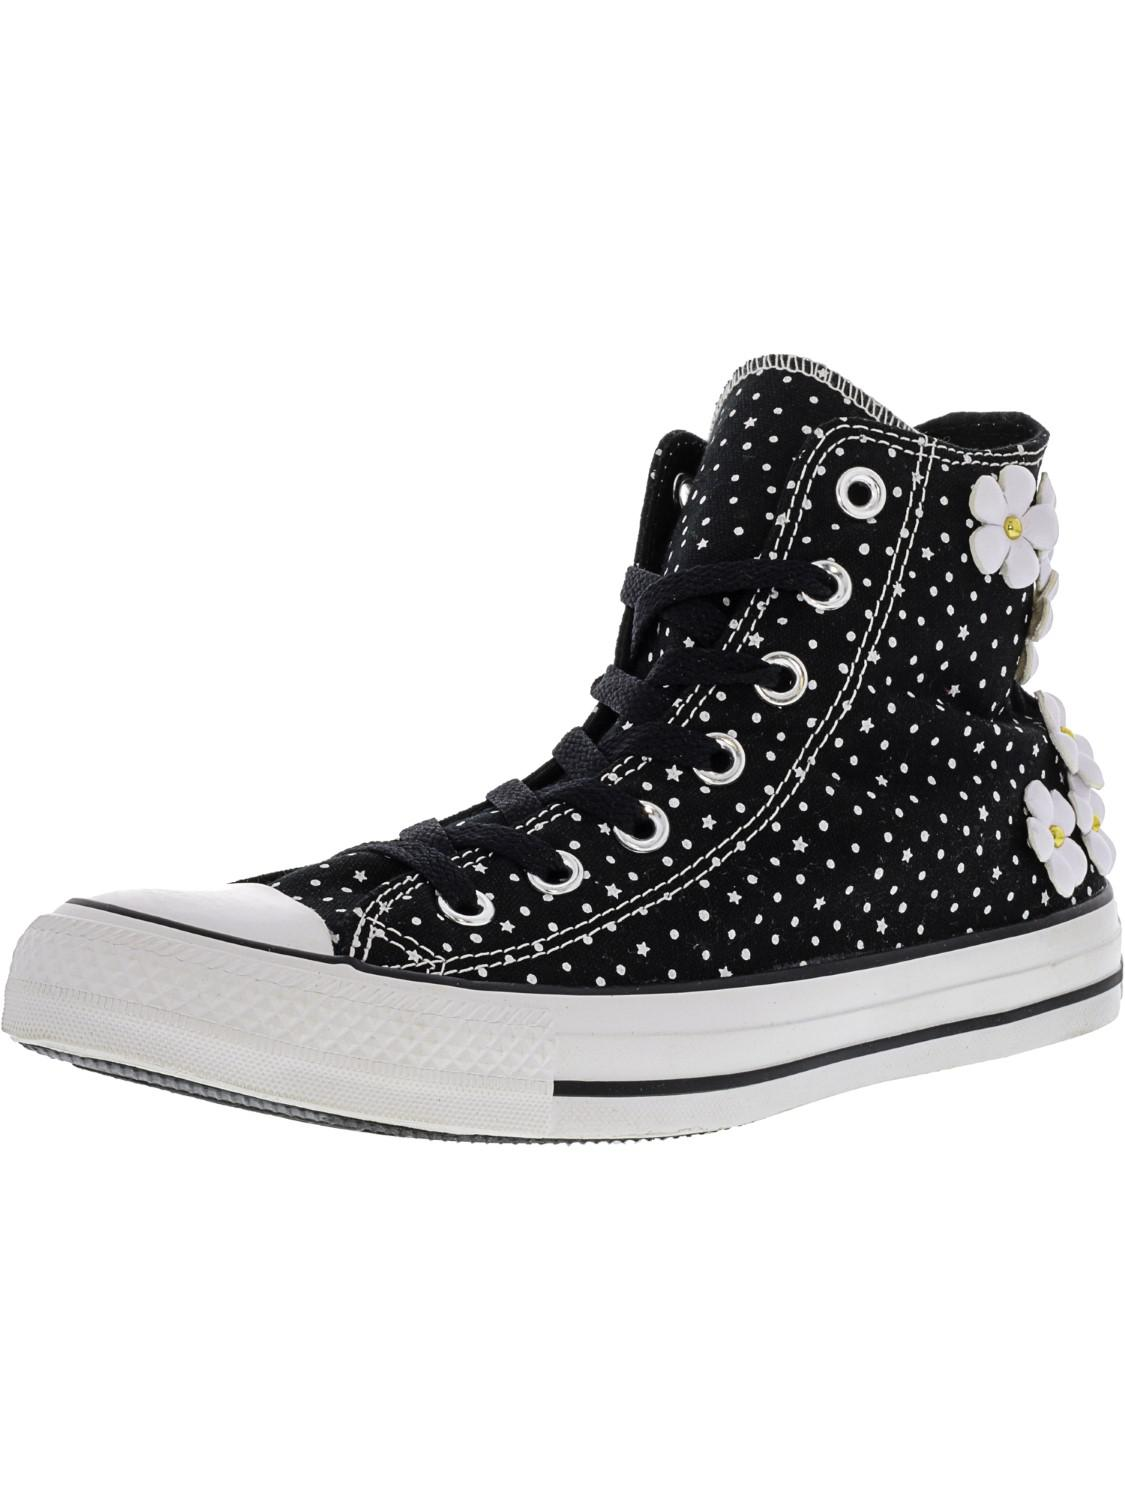 391583755b1b Gallery. Previously sold at  Jet.com · Women s Converse Chuck Taylor ...